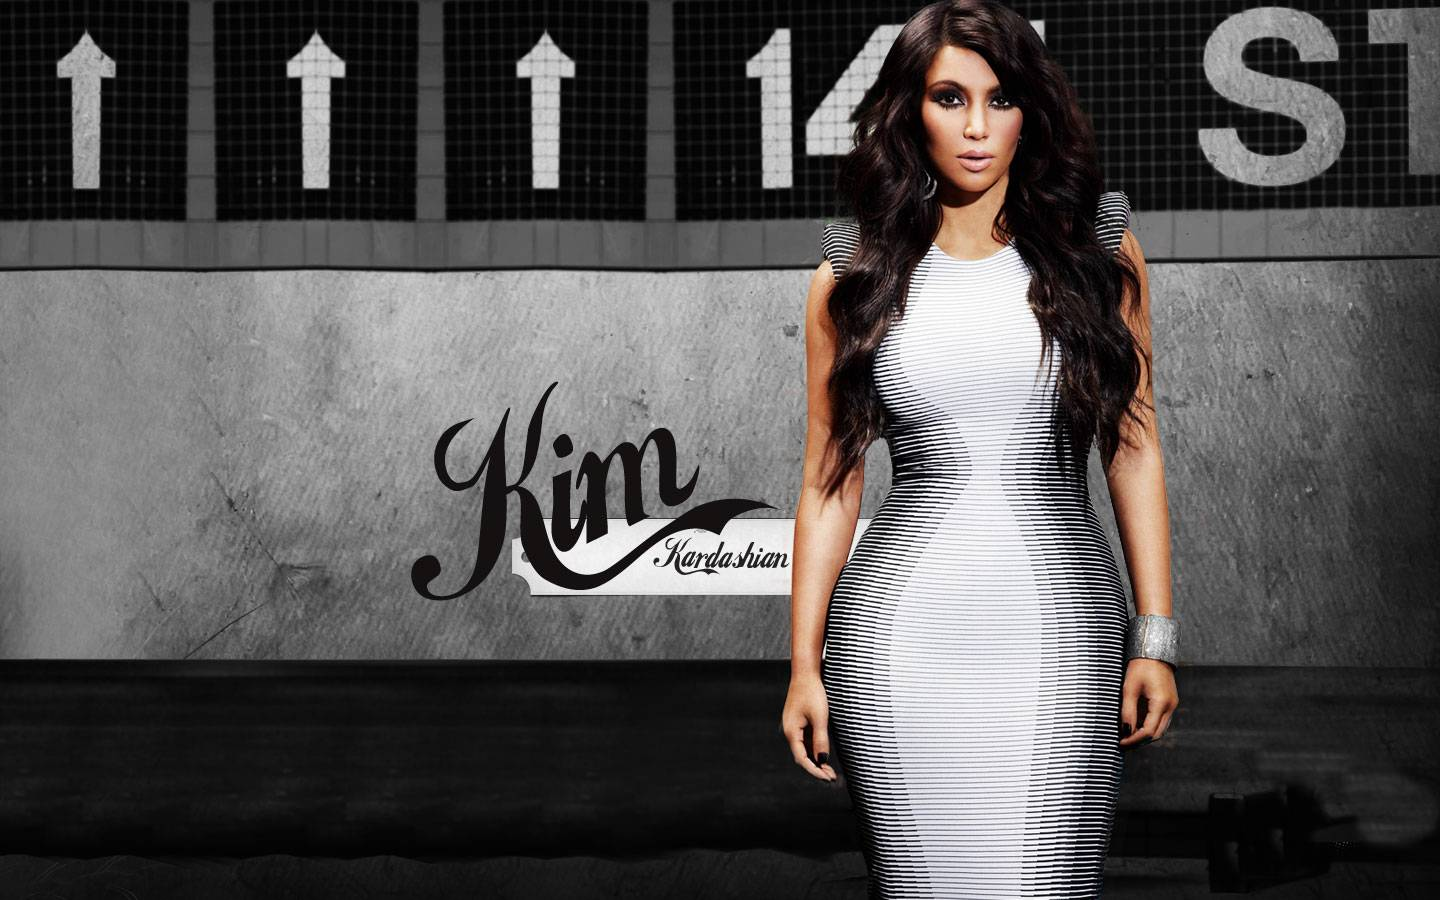 Kim Kardashian background Wallpaper 10jpg 1440x900